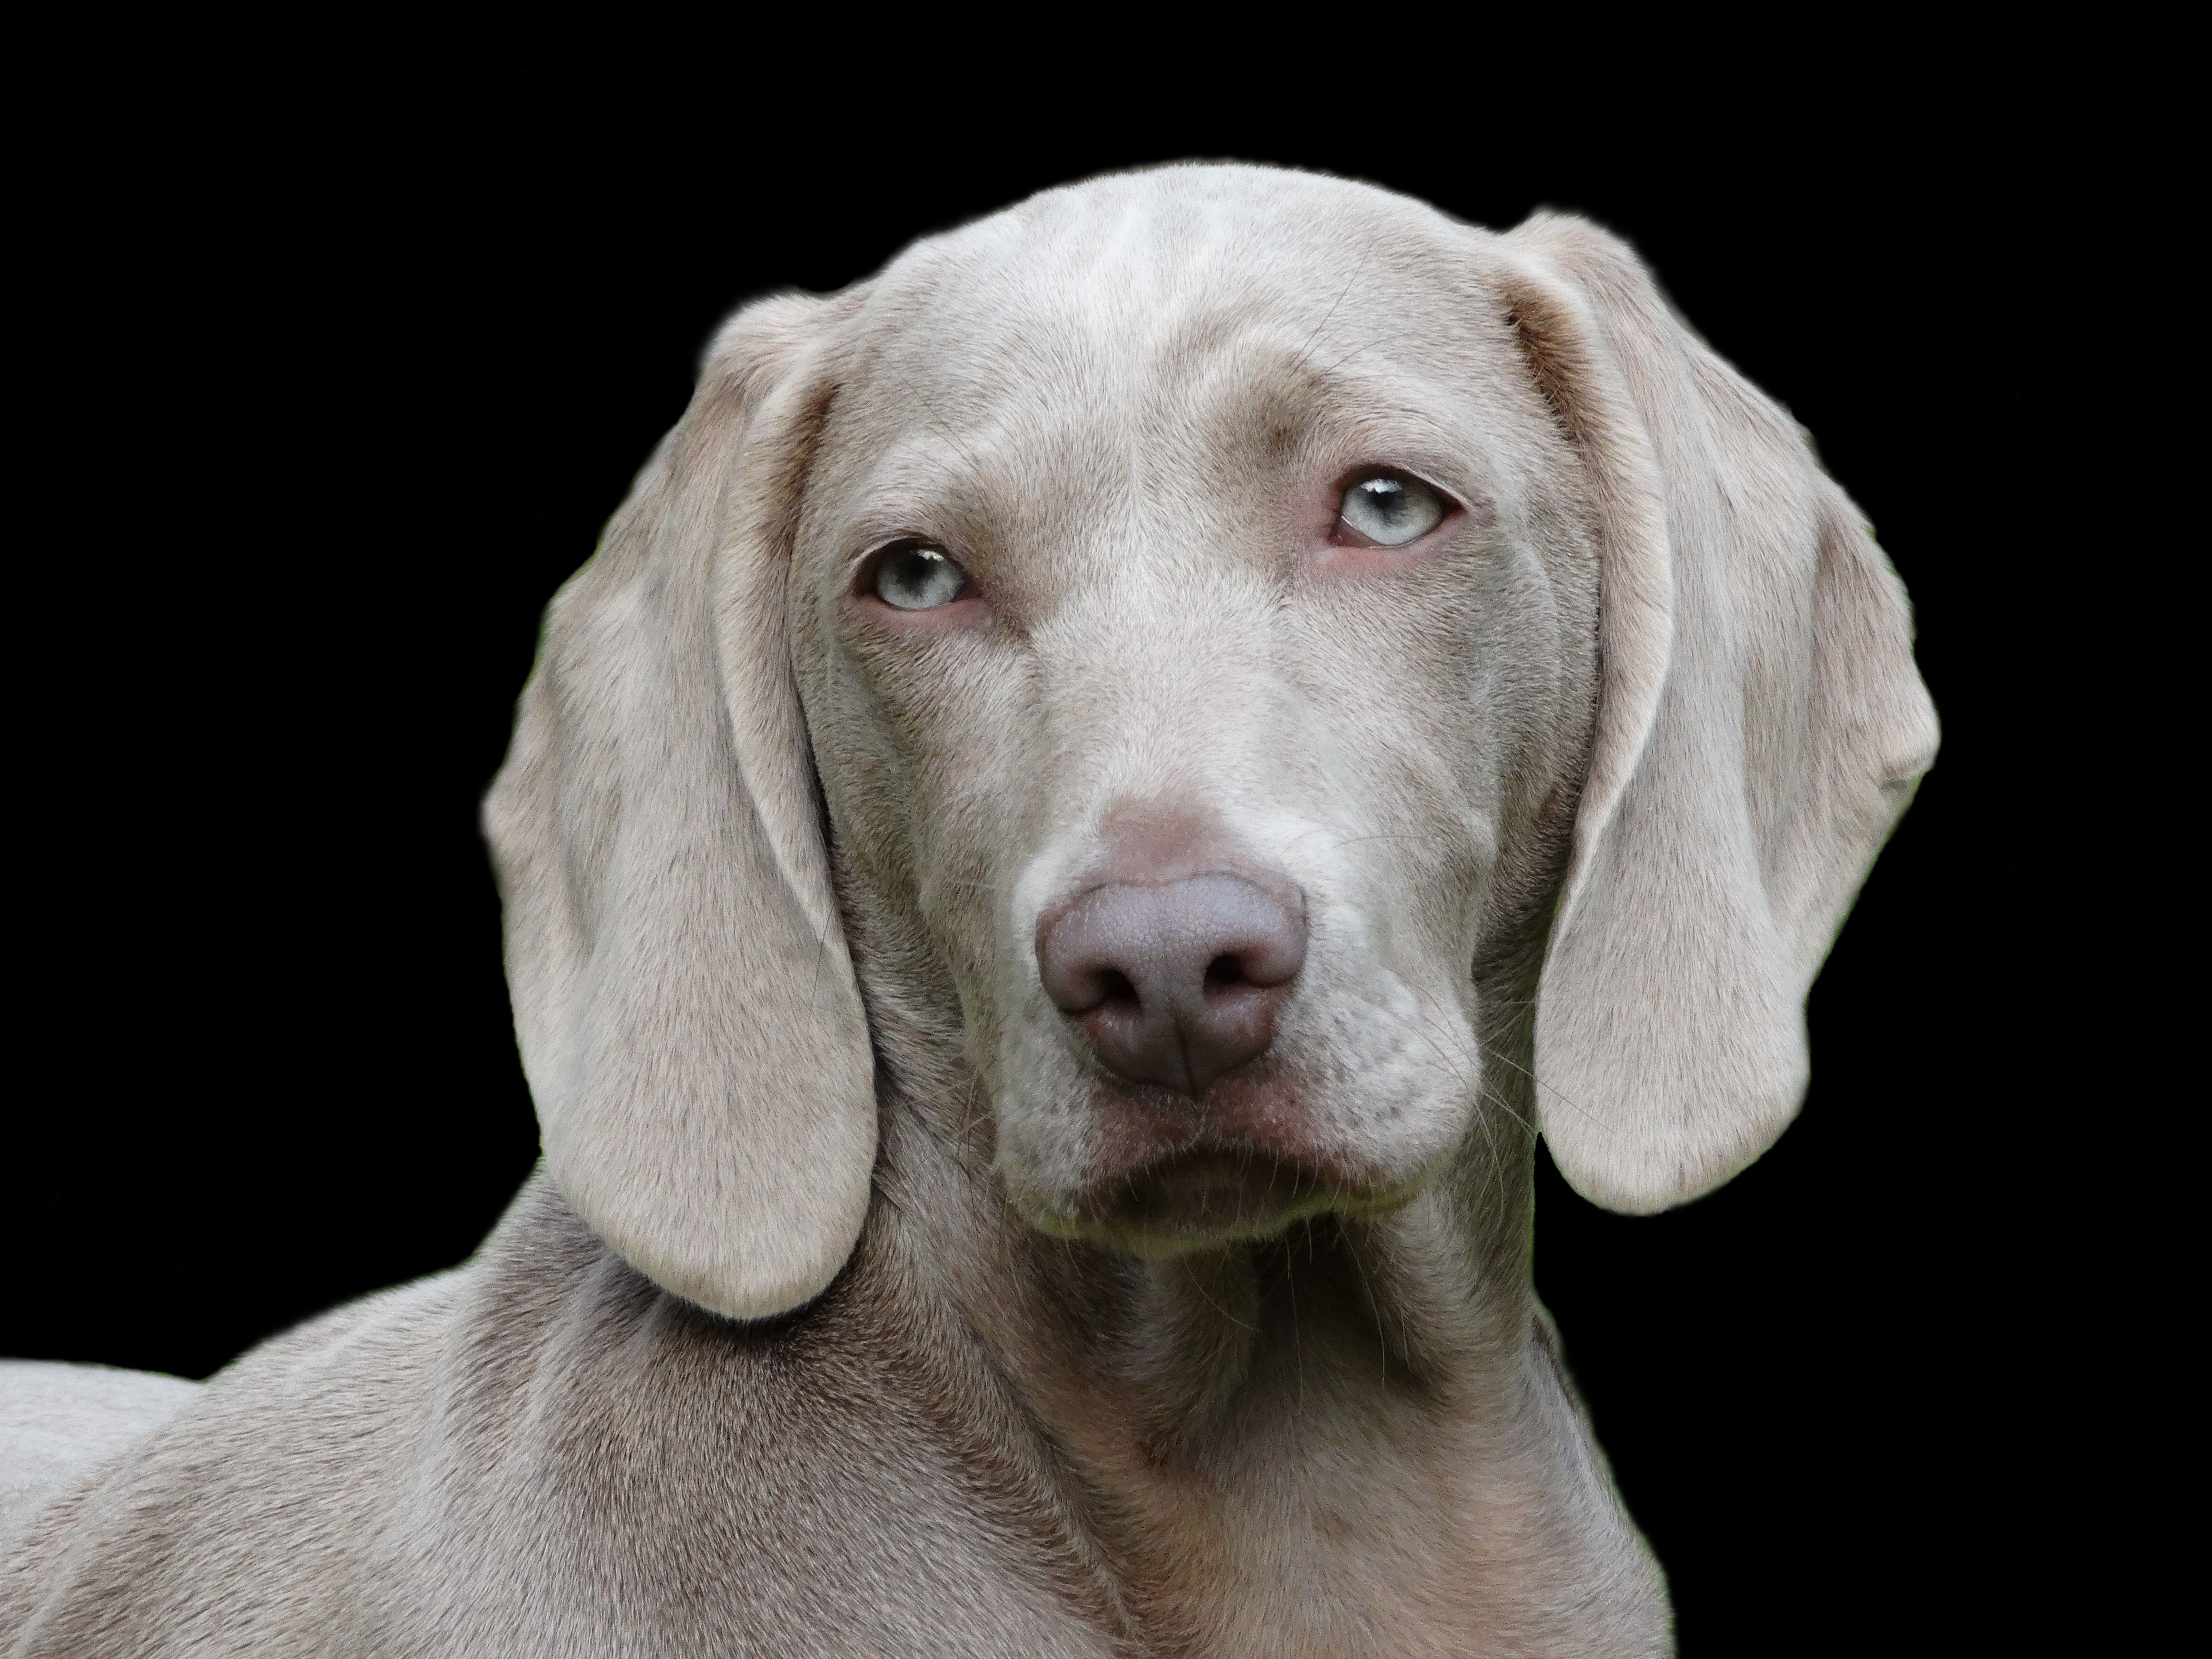 Pin By Frances Frek On Nature S Wisdom In 2020 Weimaraner Dogs Dogs Dog Pet Store